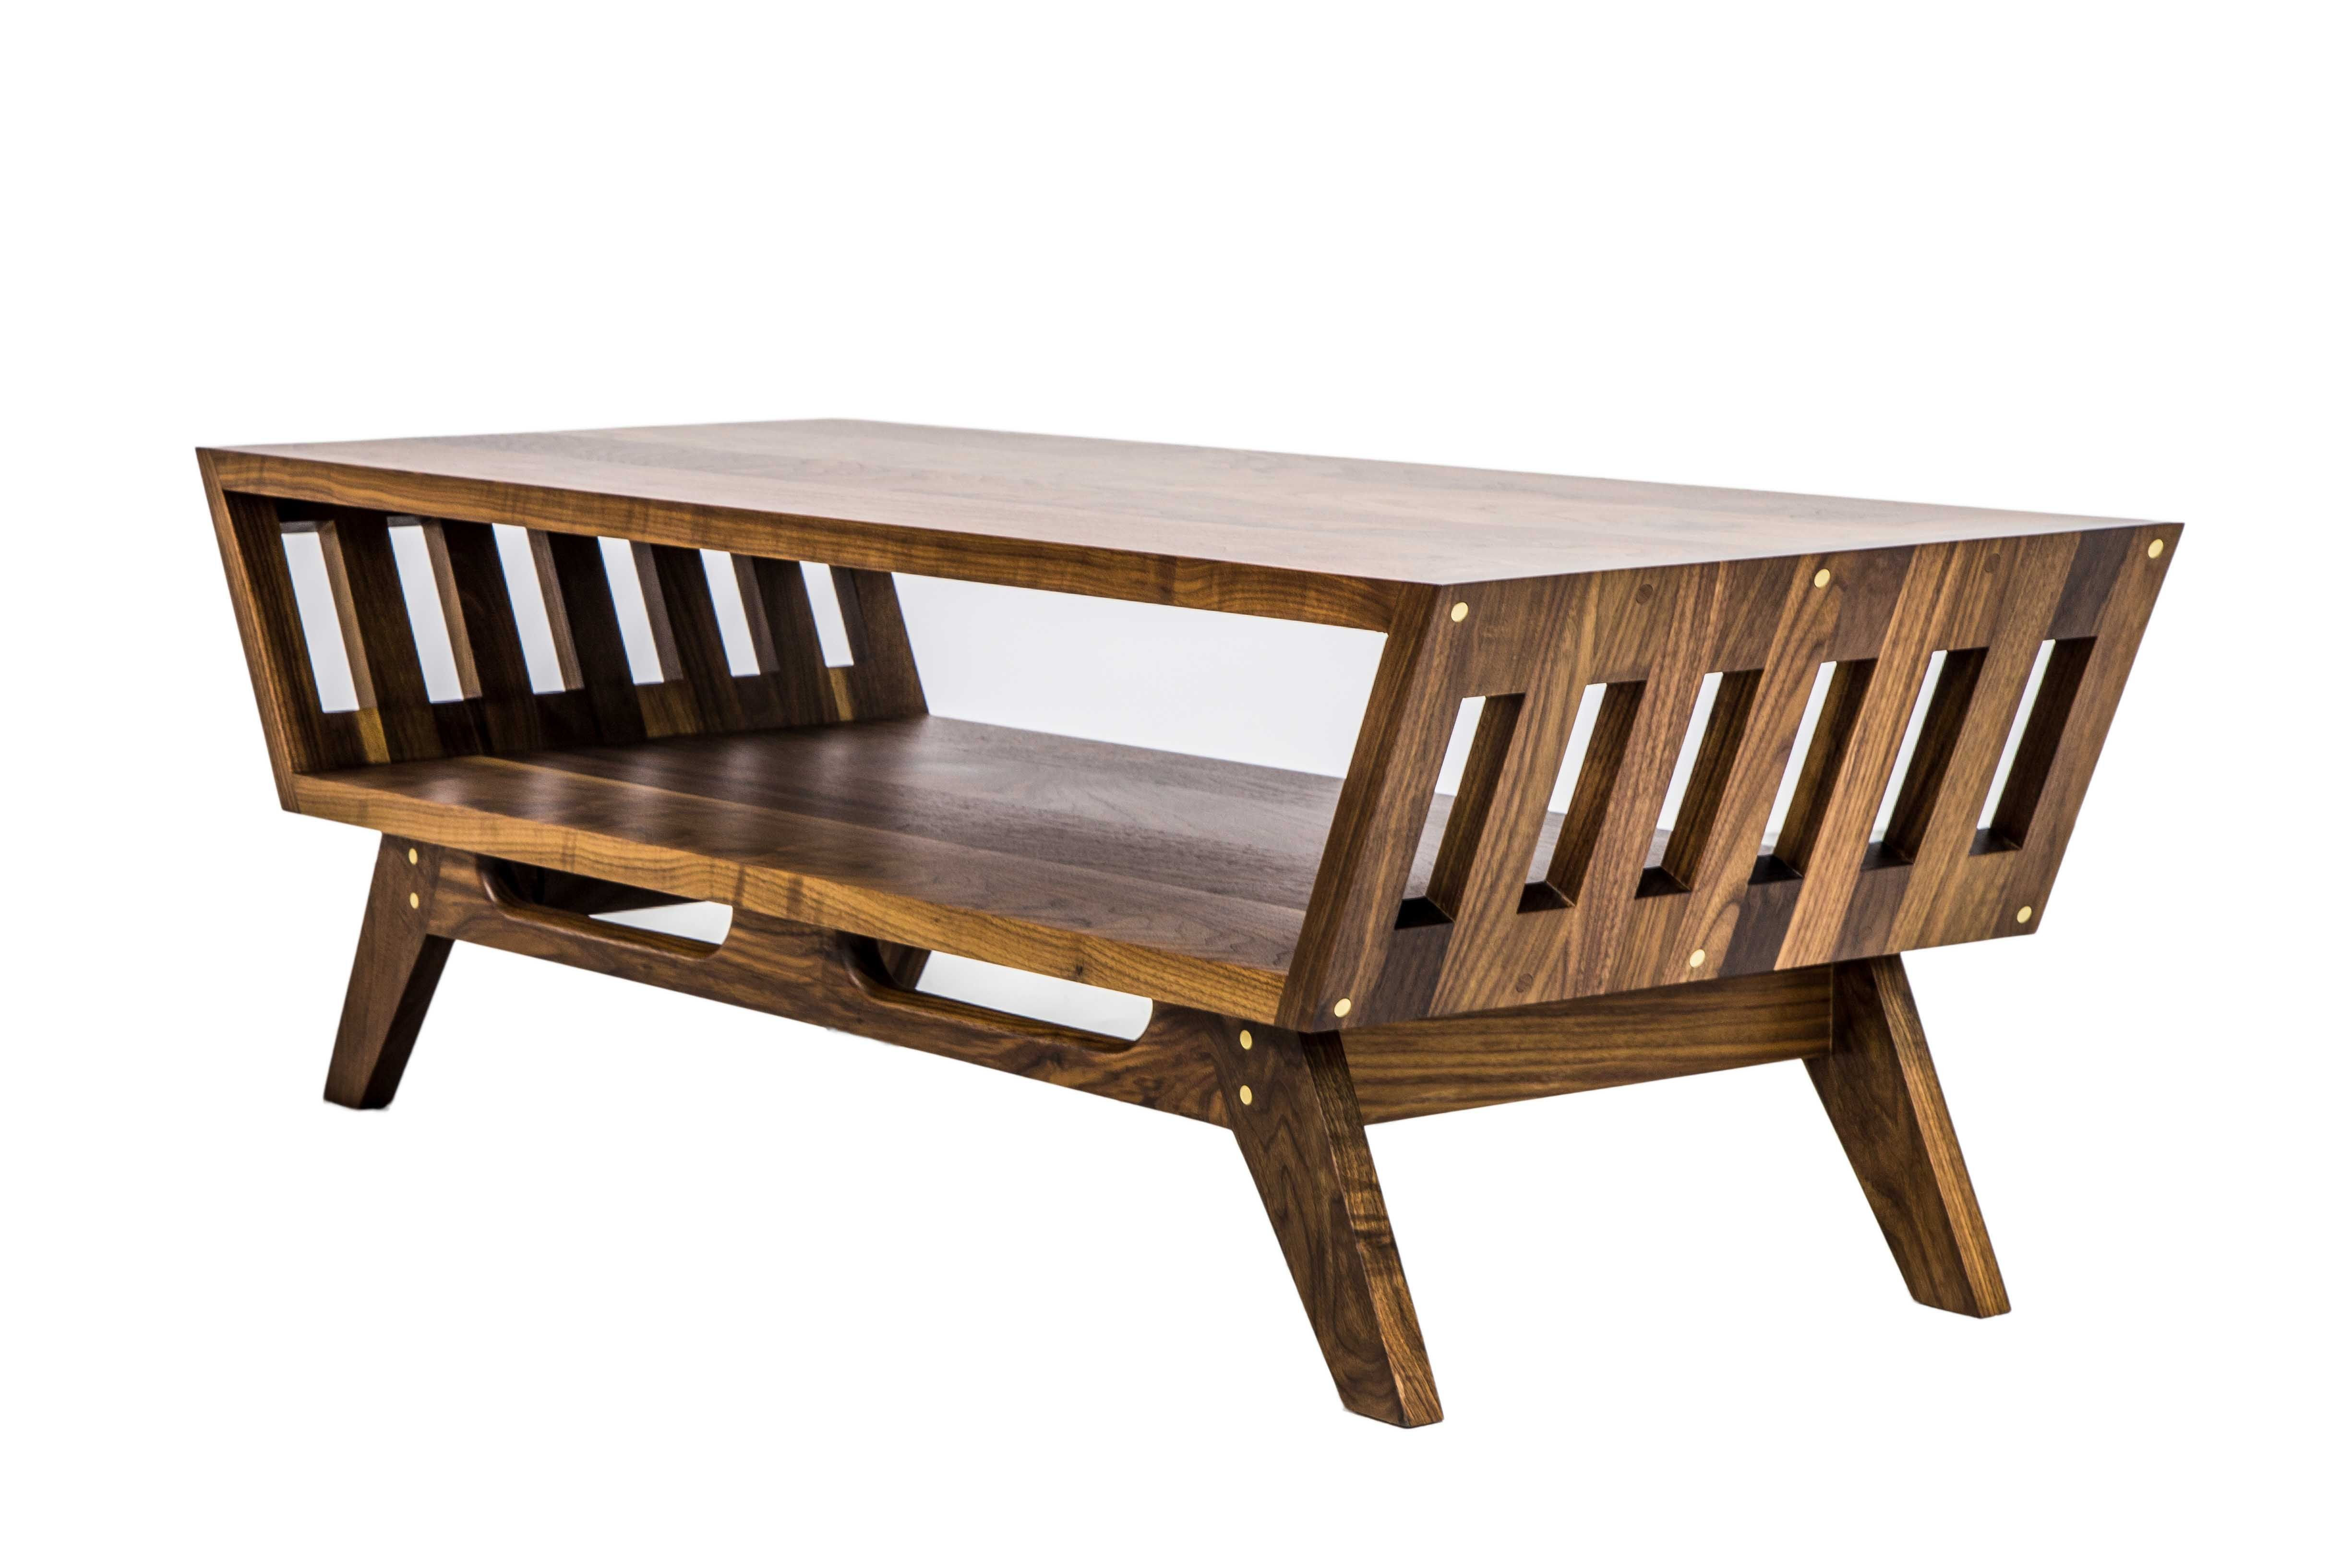 The April V2 Midcentury Modern Walnut Coffee Table